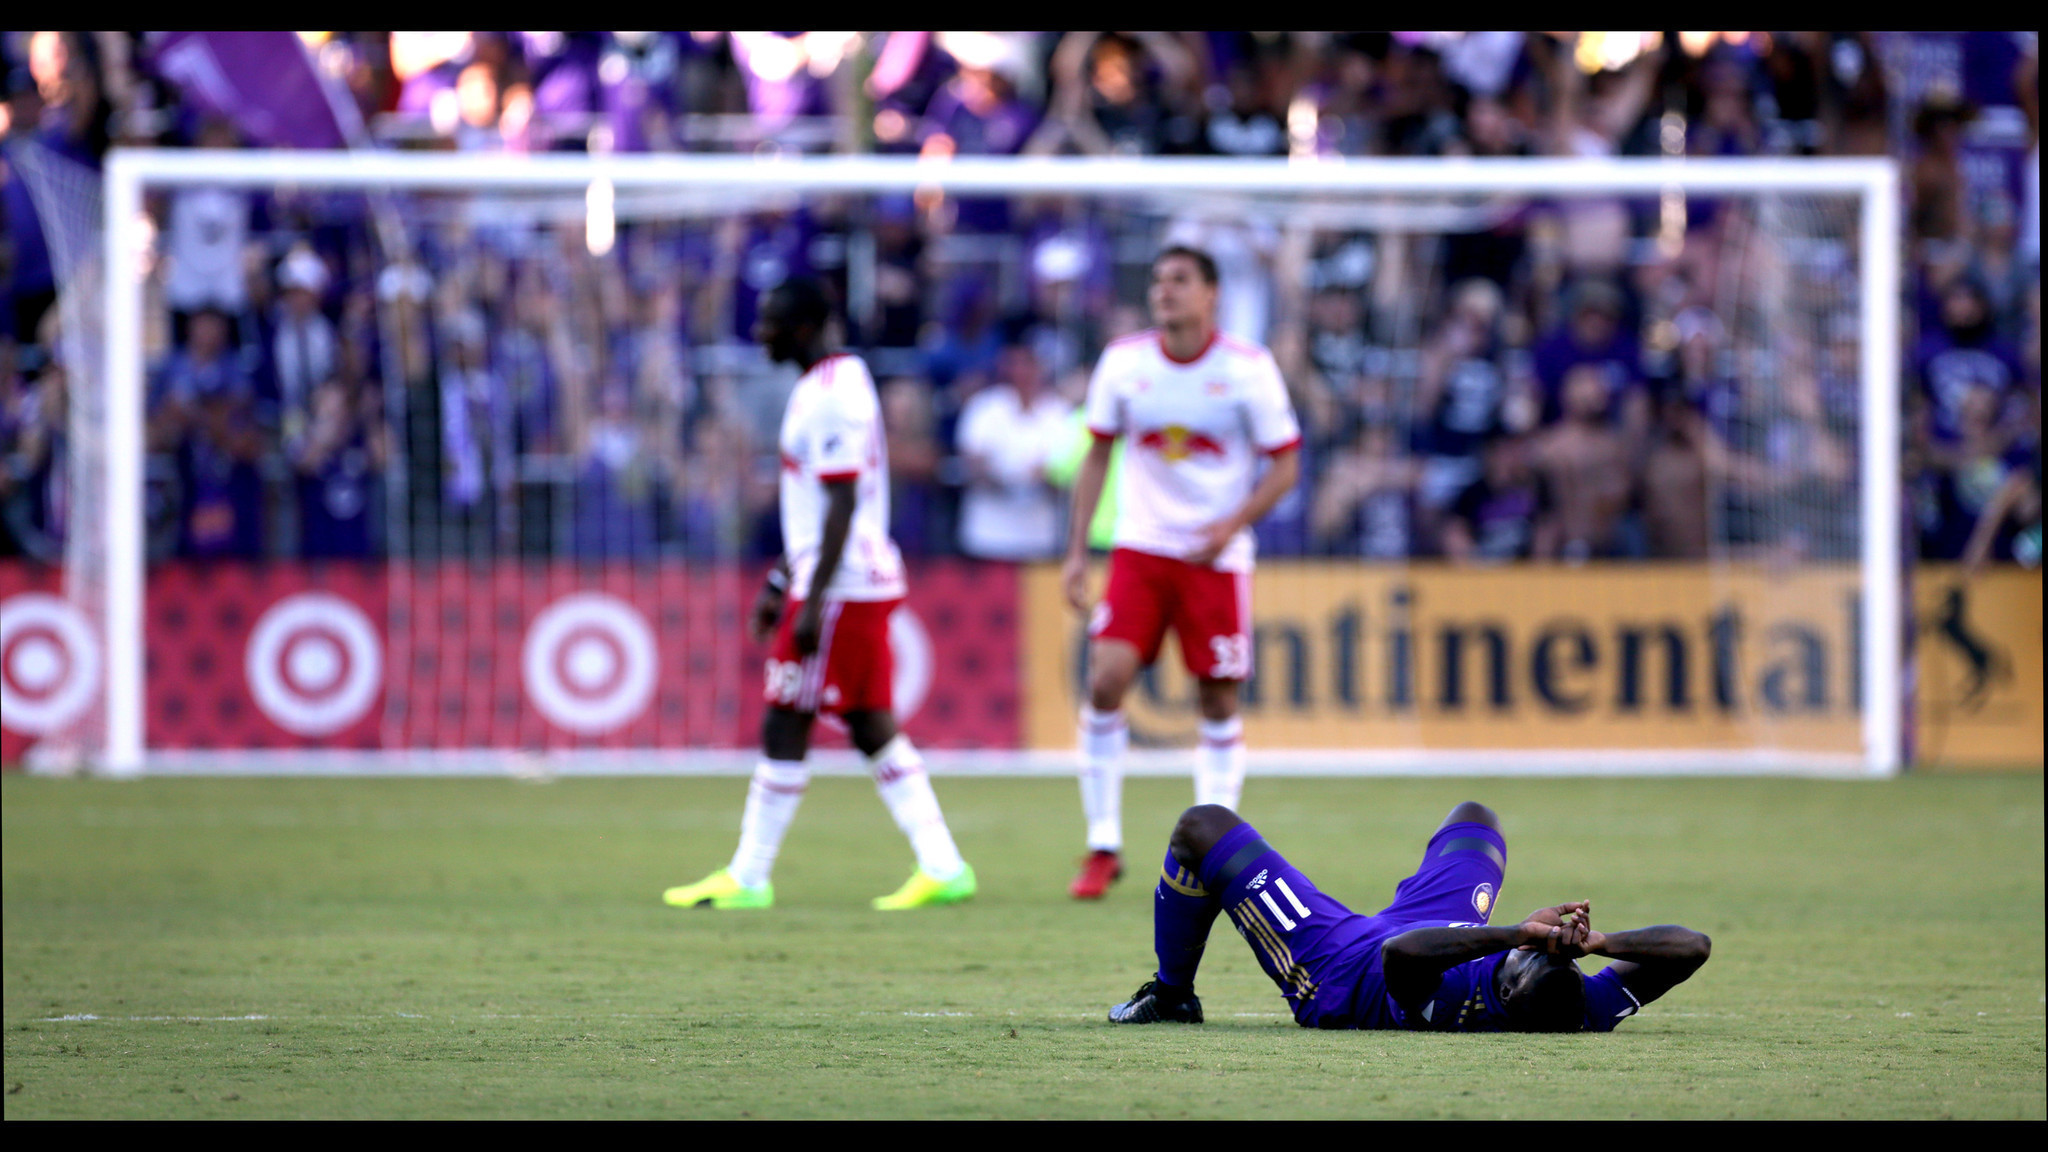 Os-sp-orlando-city-eliminated-from-playoff-contention-20171008